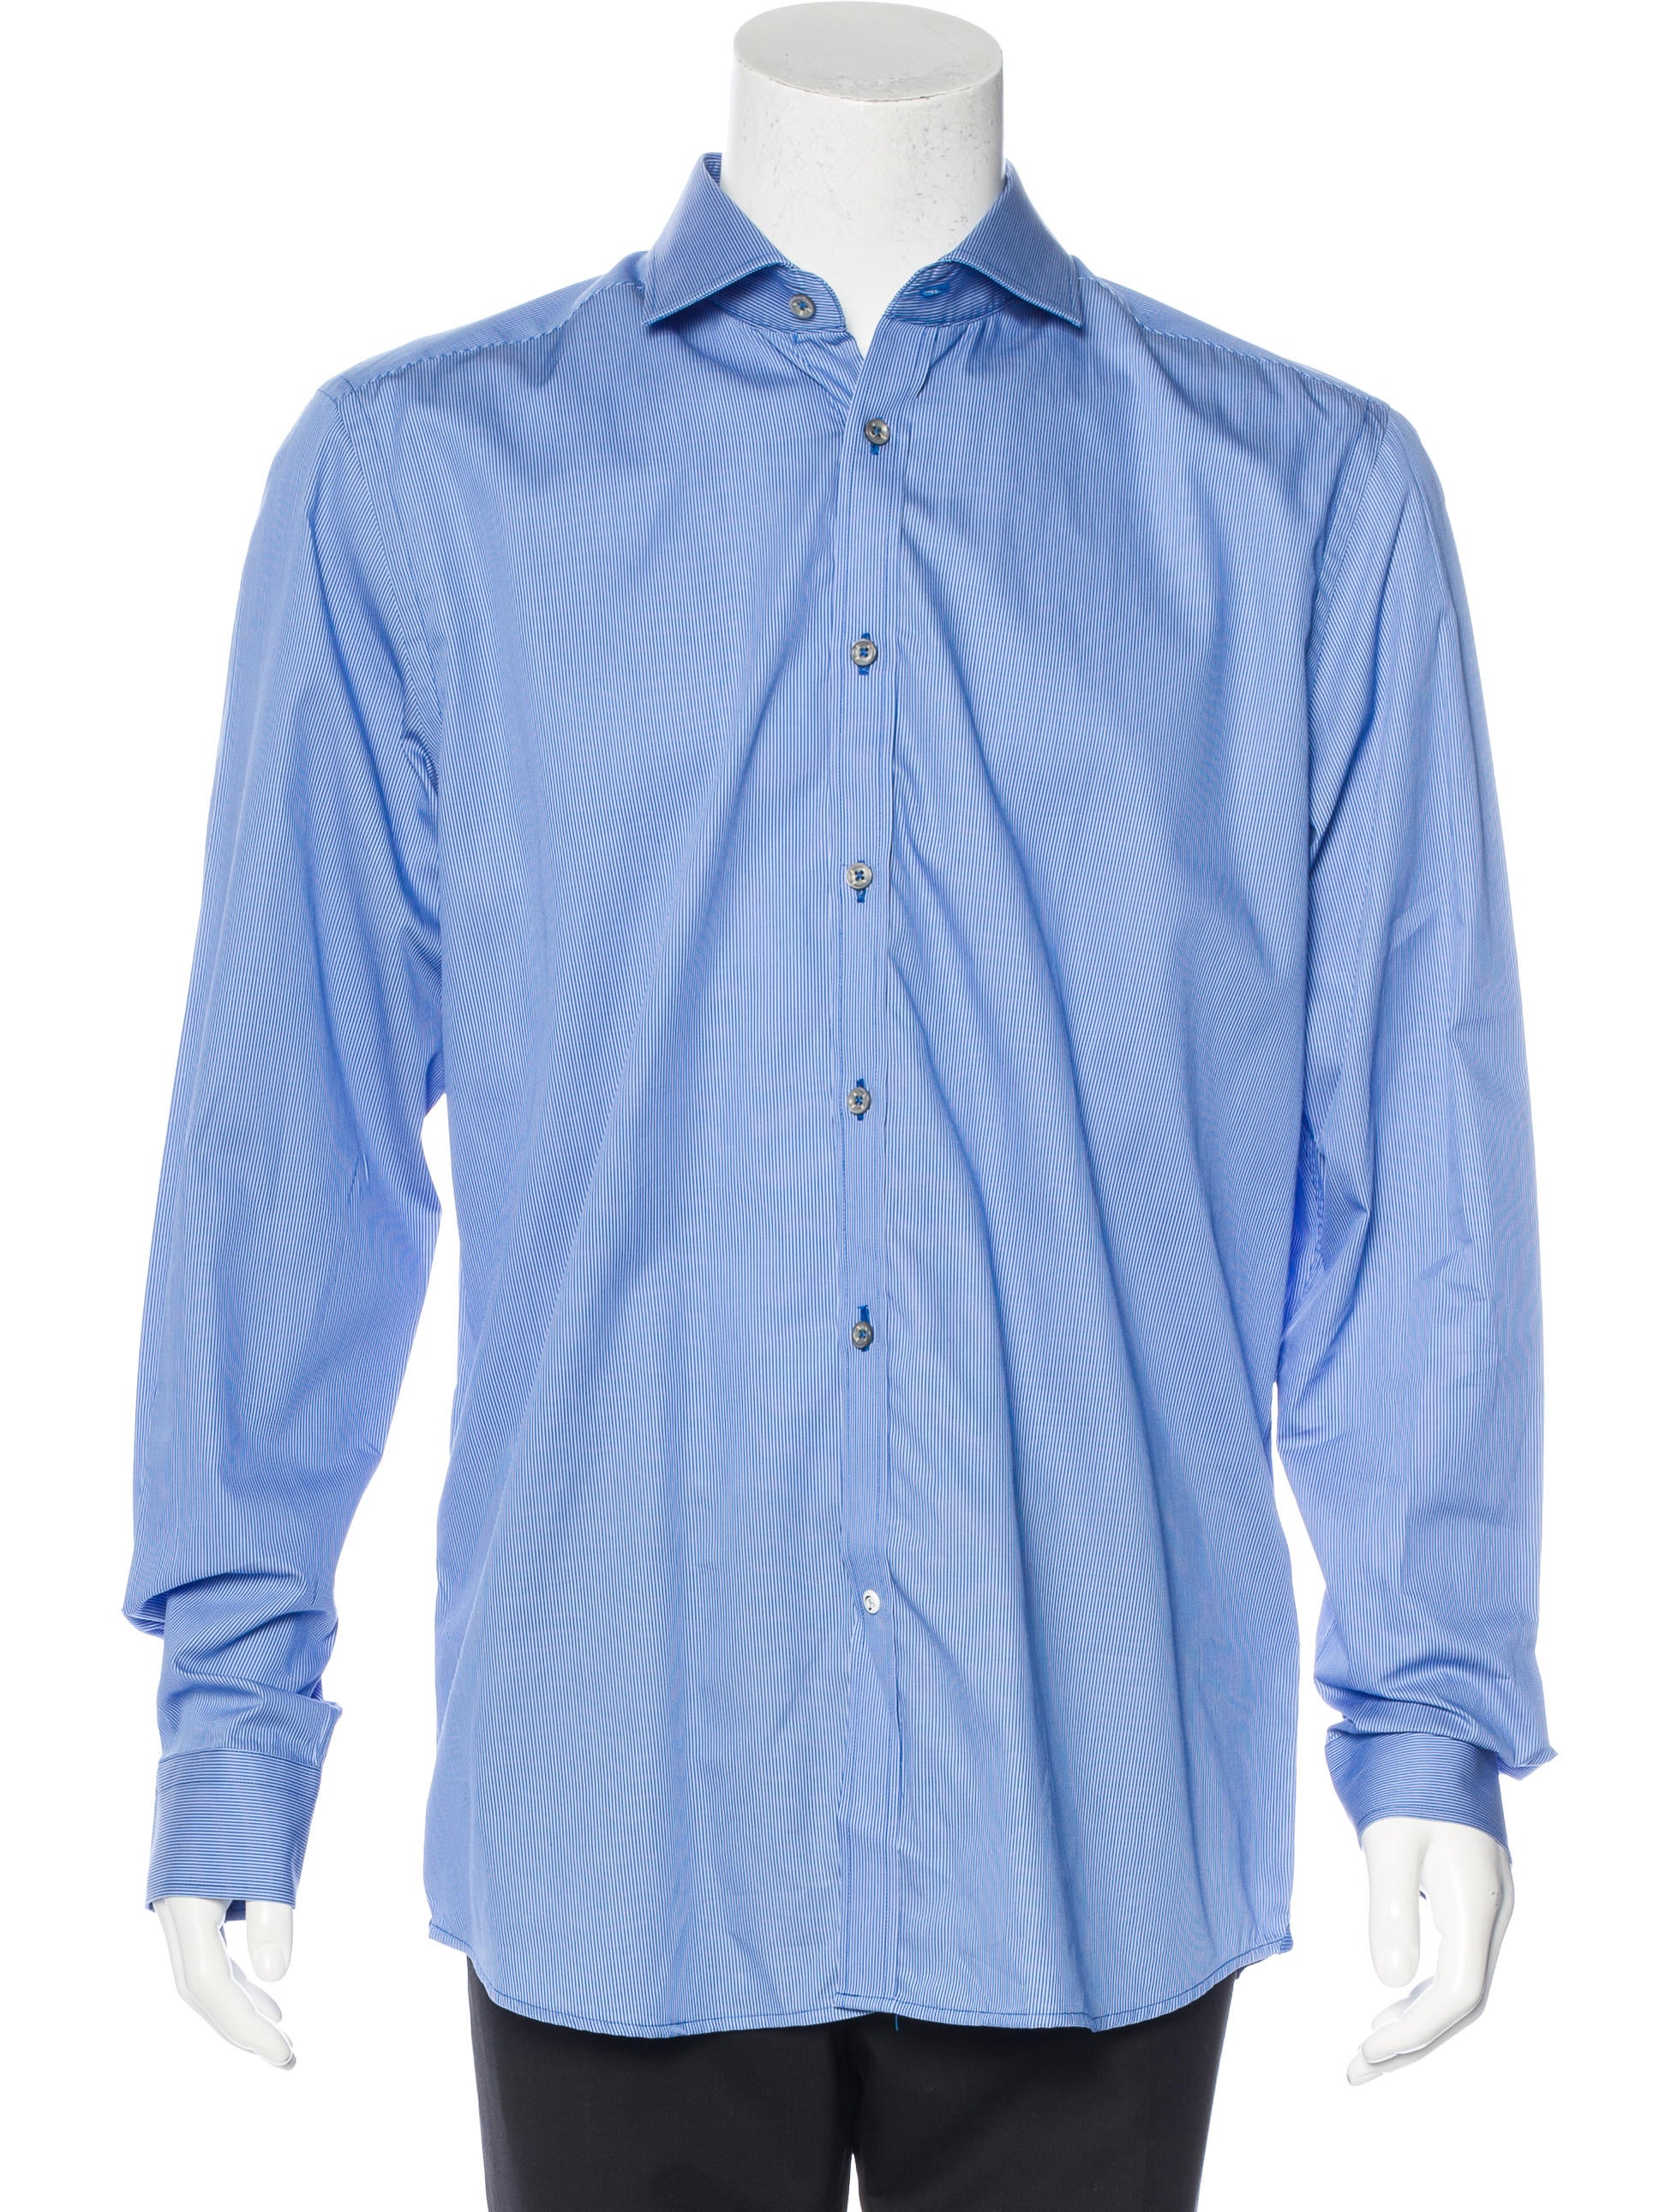 Robert graham tailored fit striped shirt w tags for Tailored fit dress shirts